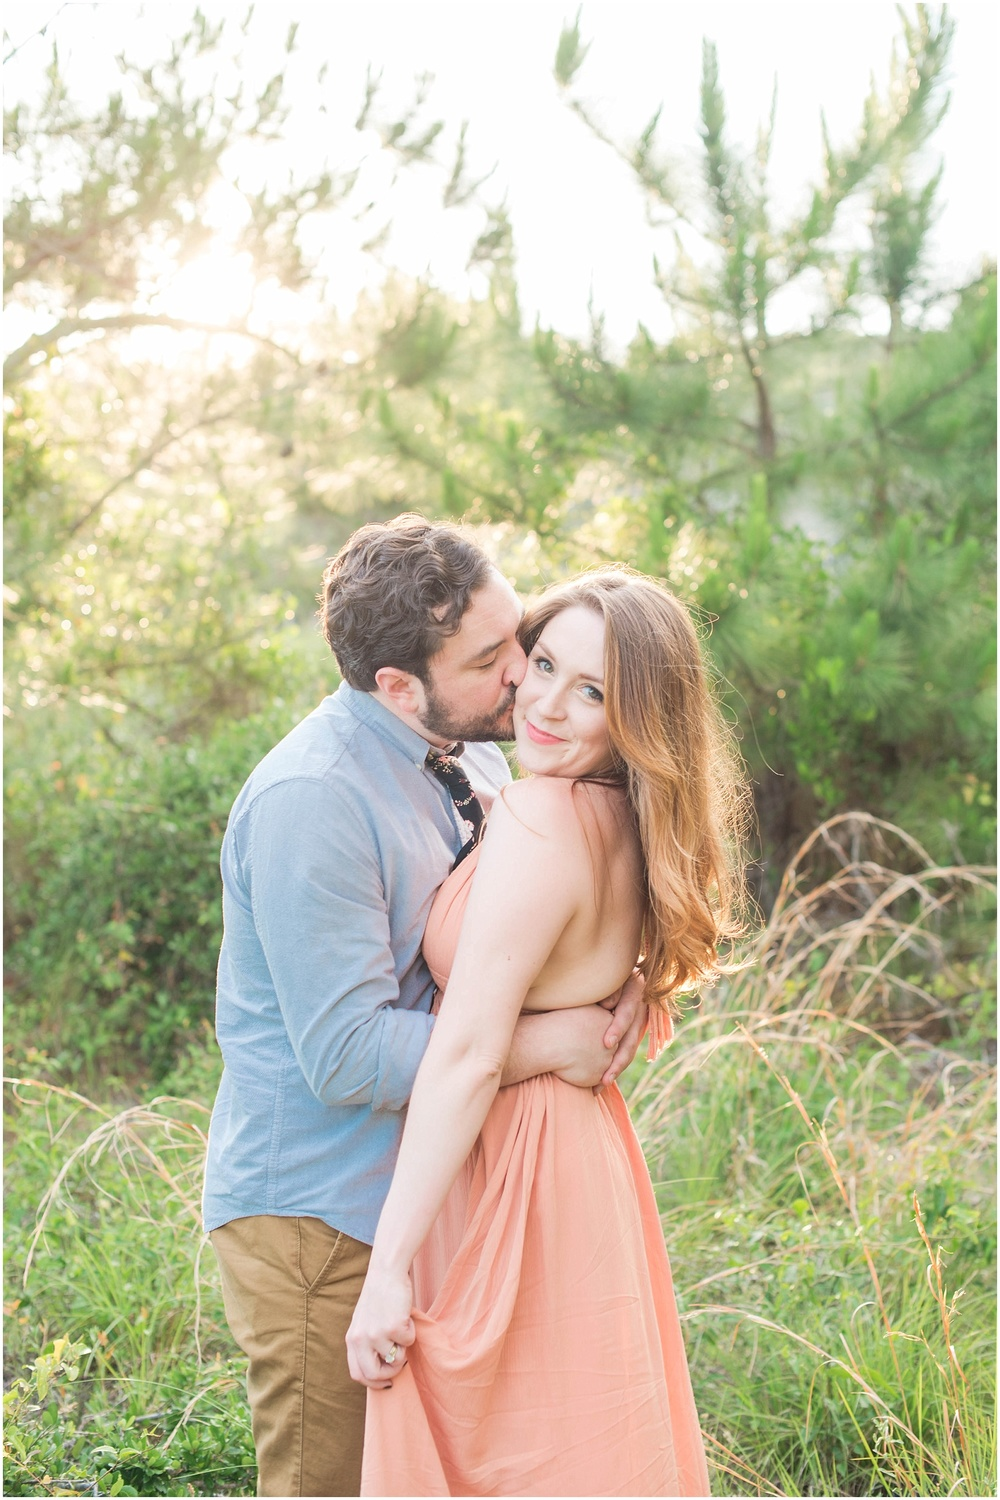 Hannah Leigh Photography Kiawah Island Anniversary Session_0386.jpg